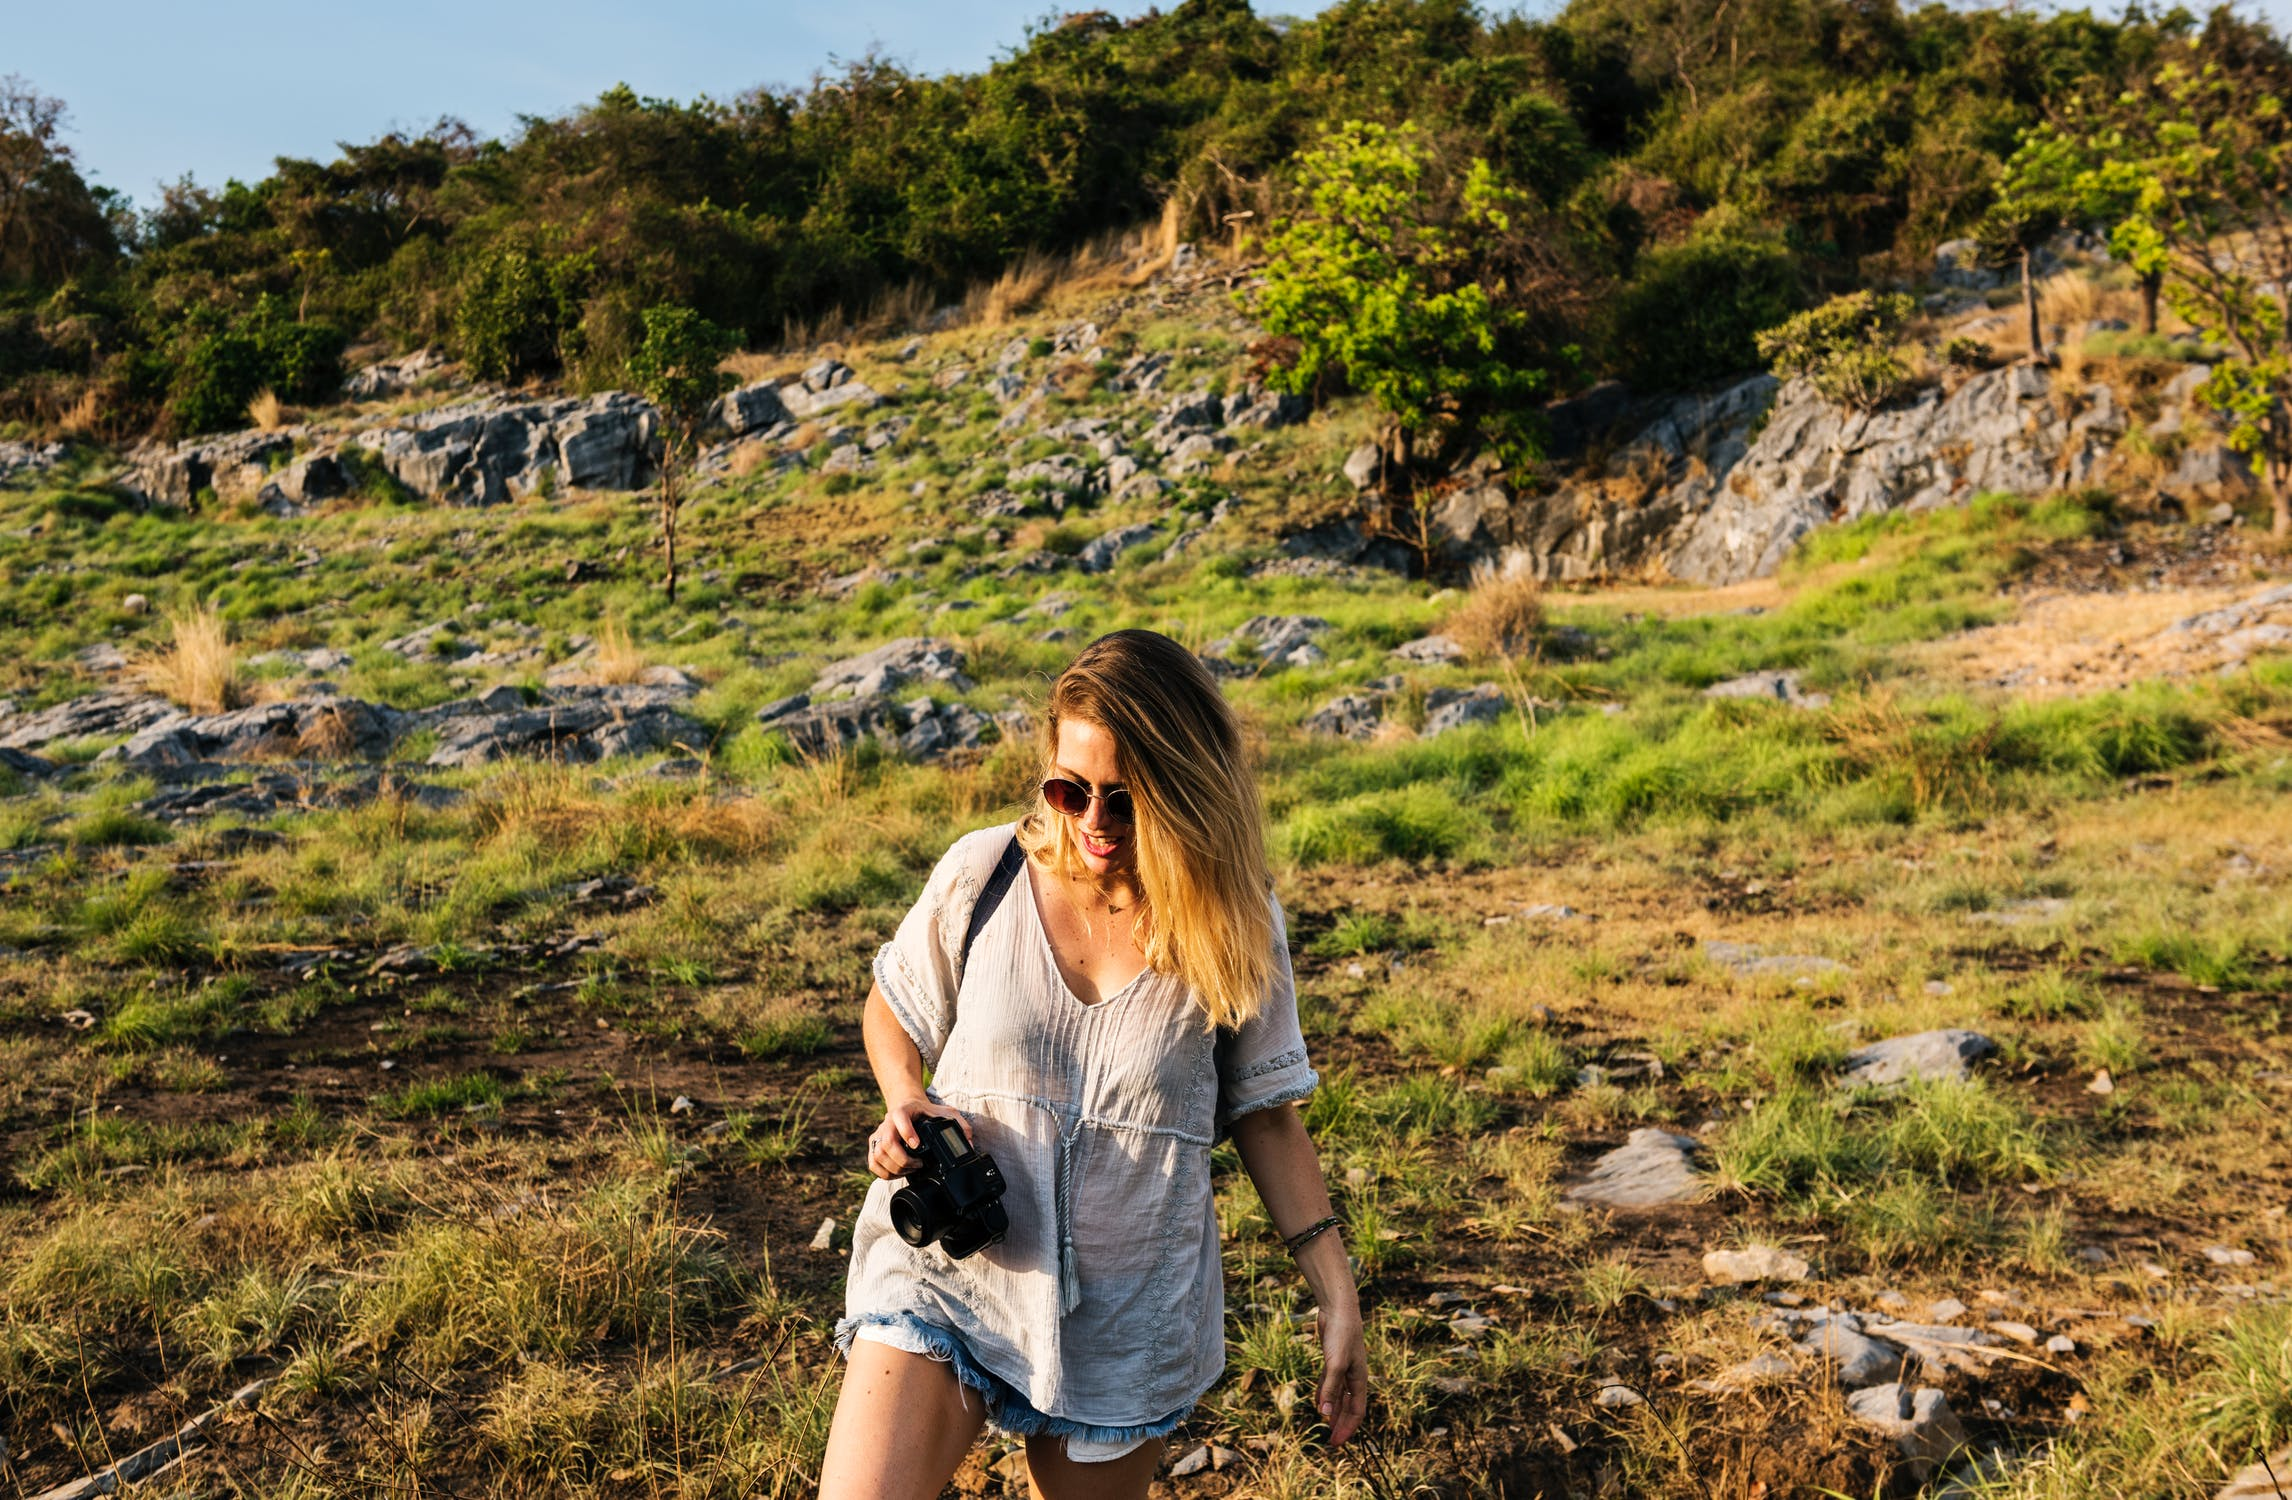 Girl hiking with a camera